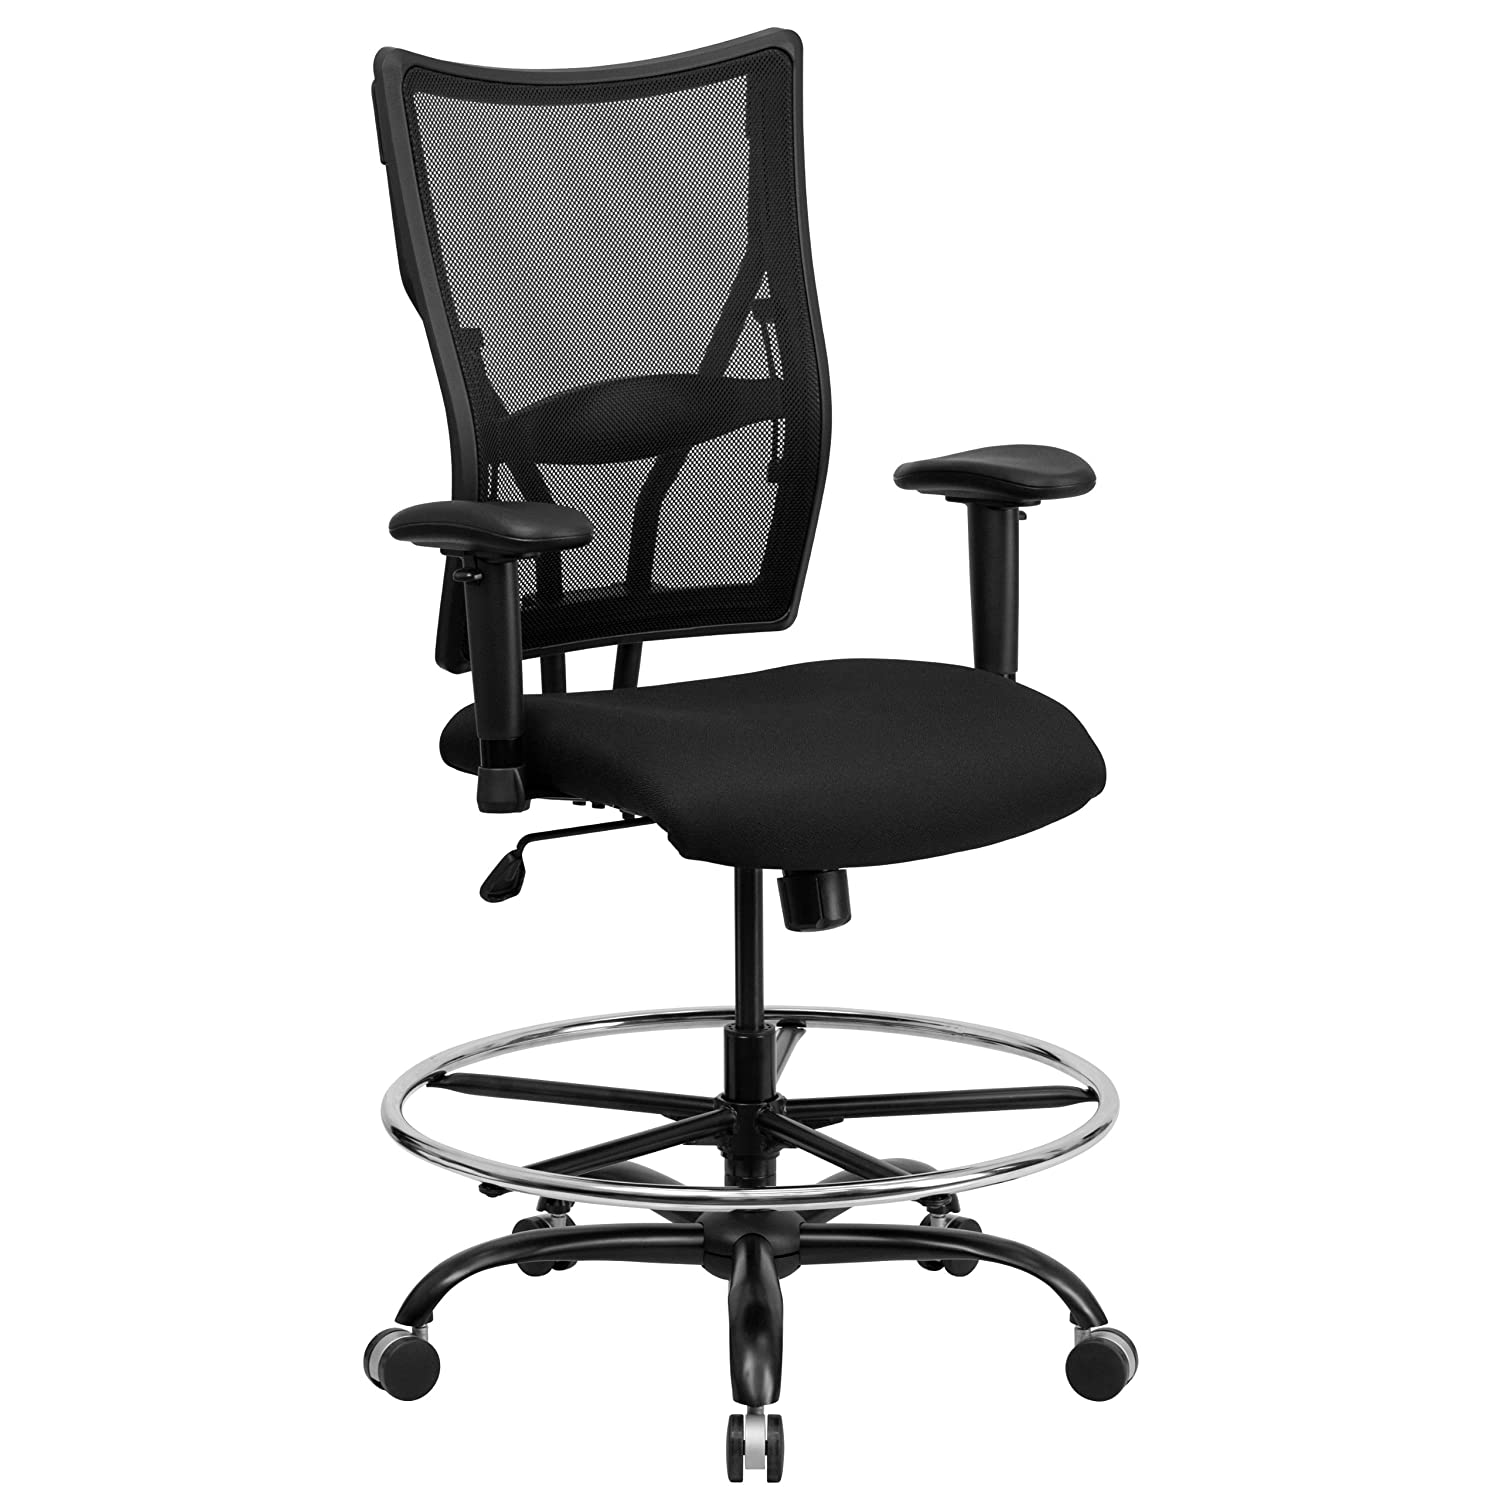 Flash Furniture HERCULES Series Big & Tall 400 lb. Rated Black Mesh Ergonomic Drafting Chair with Adjustable Arms -